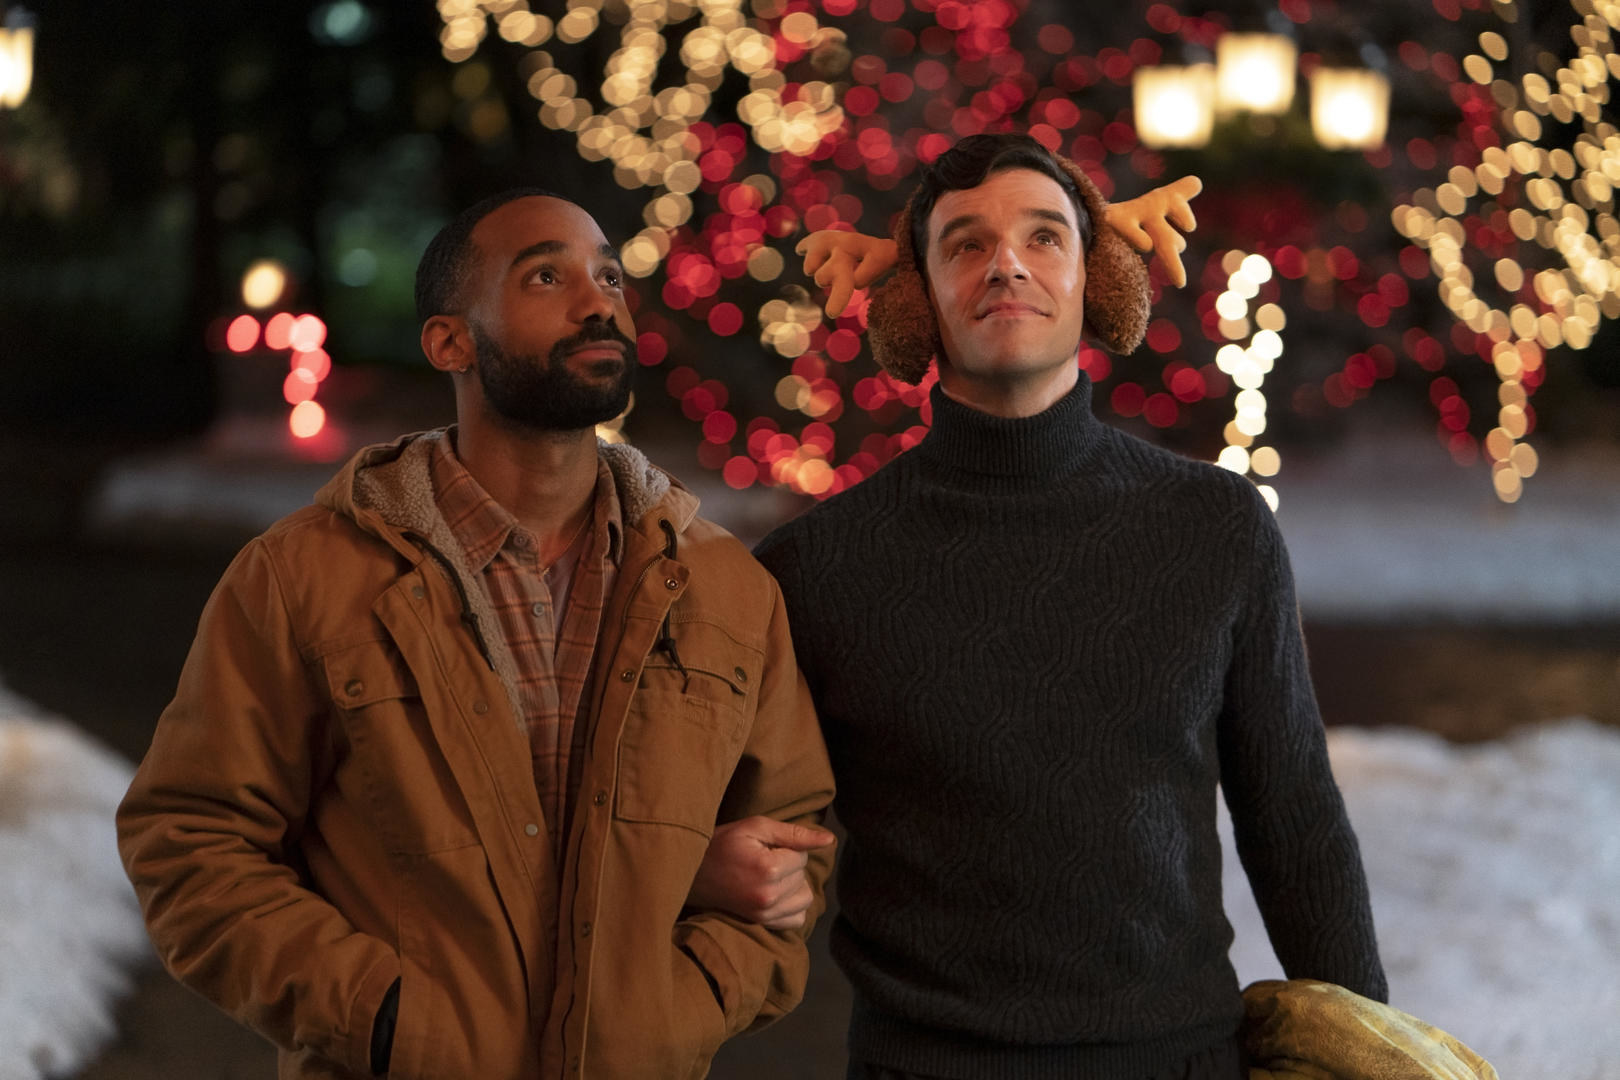 Peter, who's wearing reindeer earmuffs, stands arm-in-arm with James outside